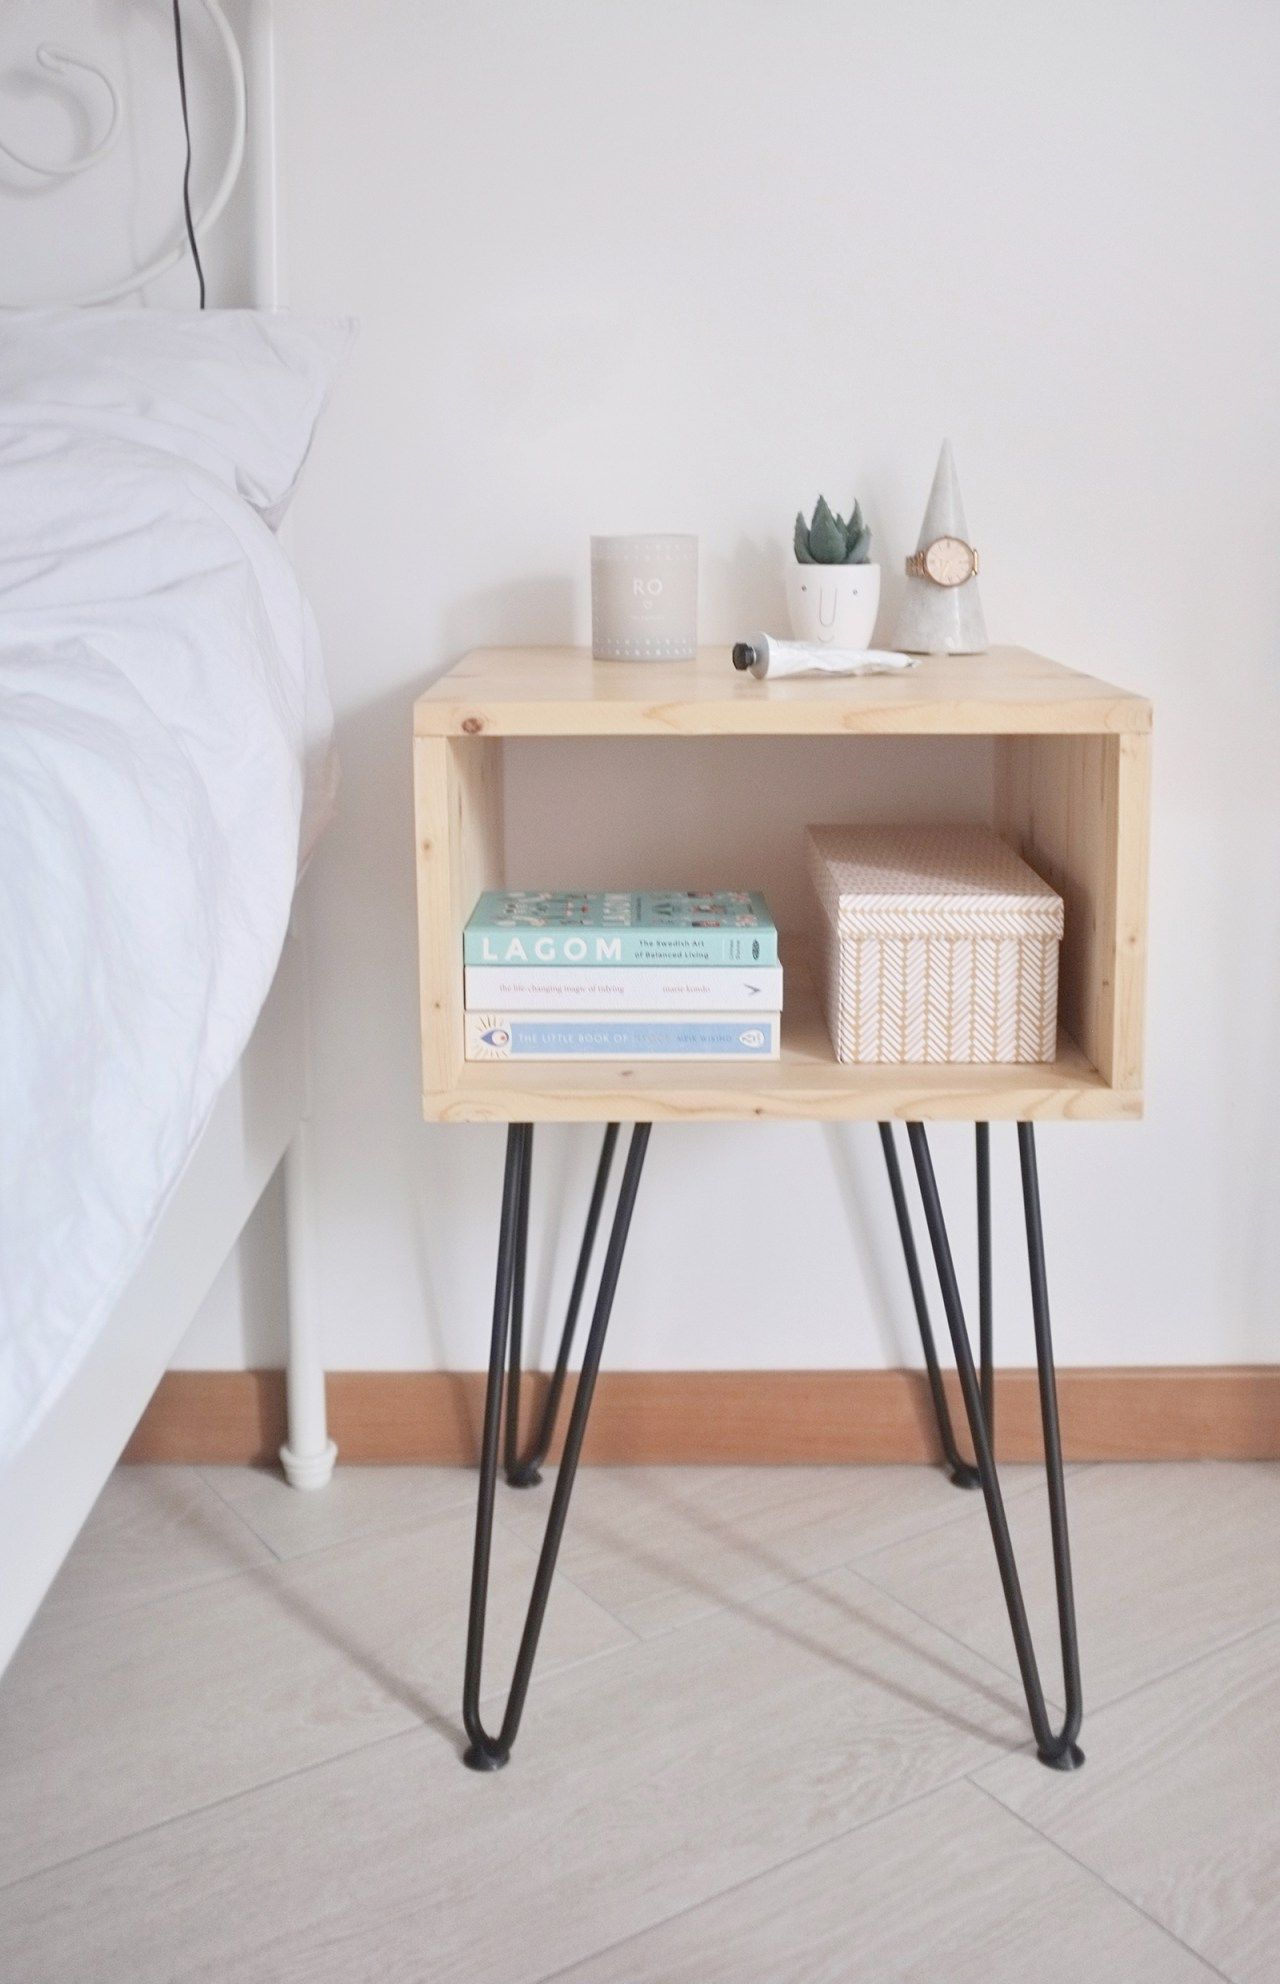 DIY // HOW TO MAKE A SCANDINAVIAN STYLE NIGHTSTAND WITH